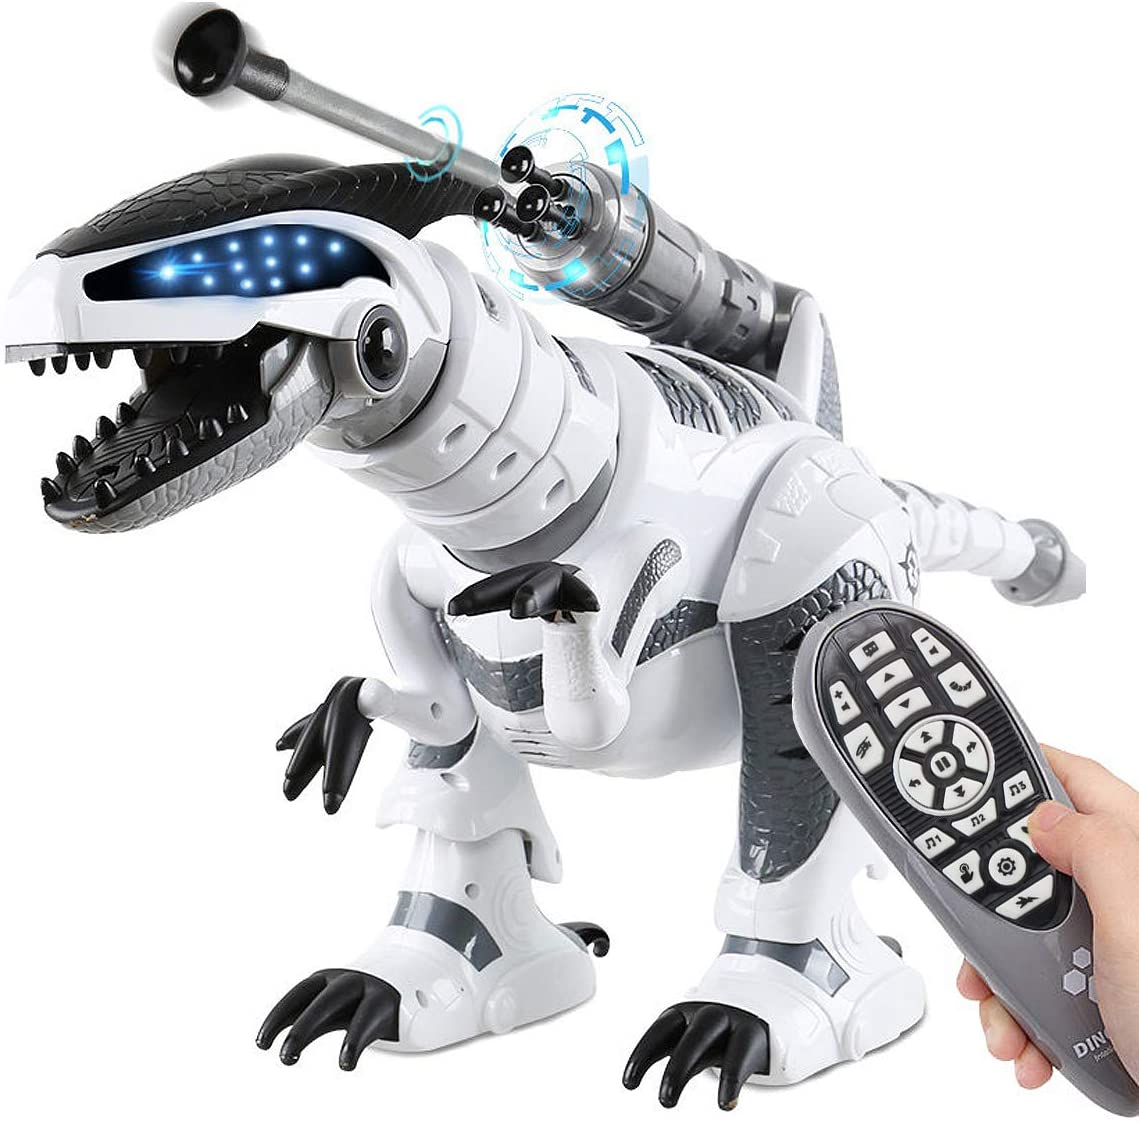 Top 9 Best Robot Dinosaur Toys For Kids & Toddlers (2020 Reviews) 4